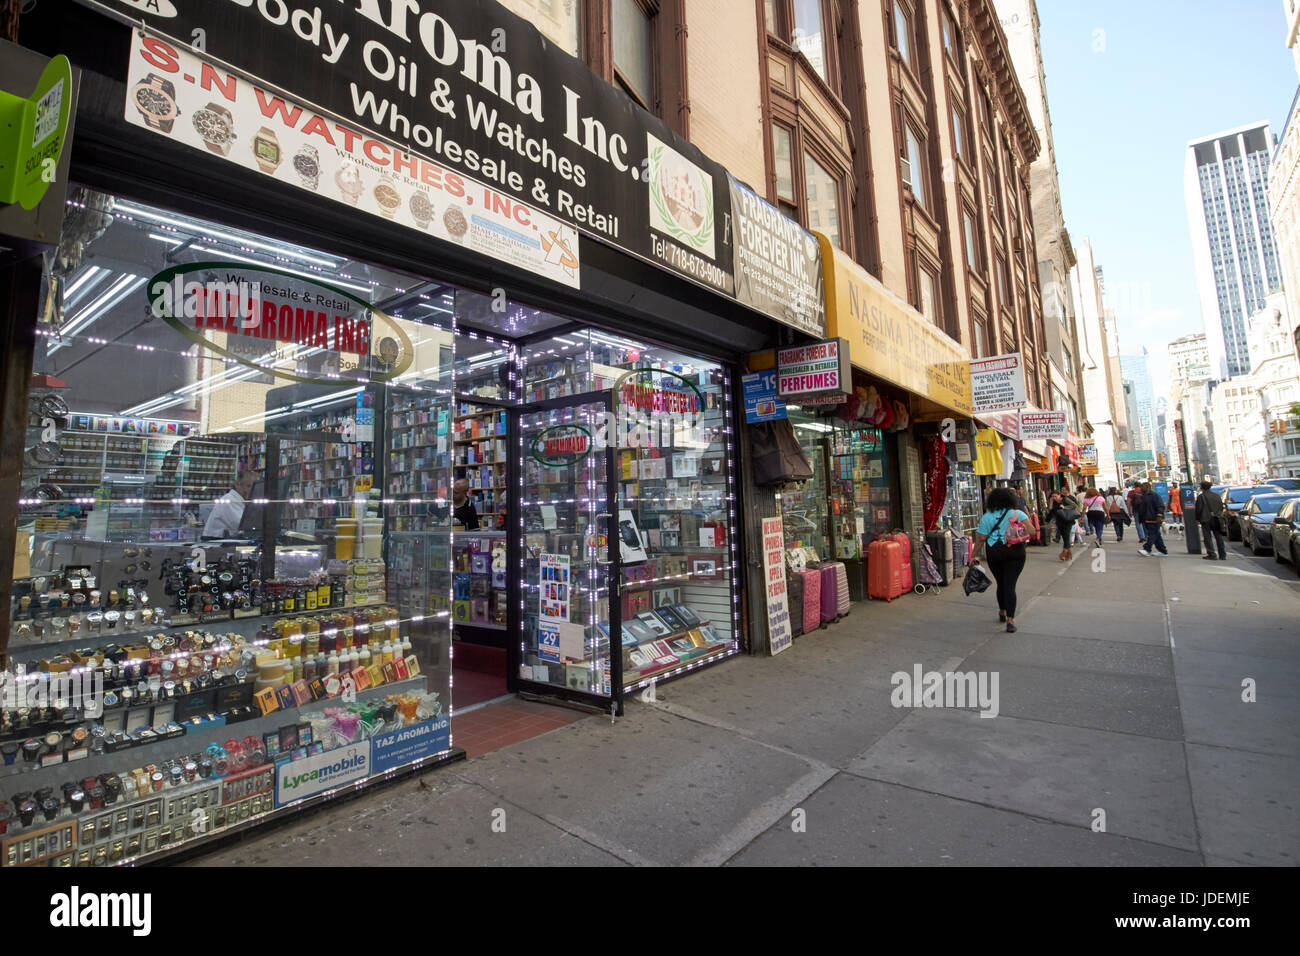 stores on broadway in new yorks perfume district New York City USA - Stock Image